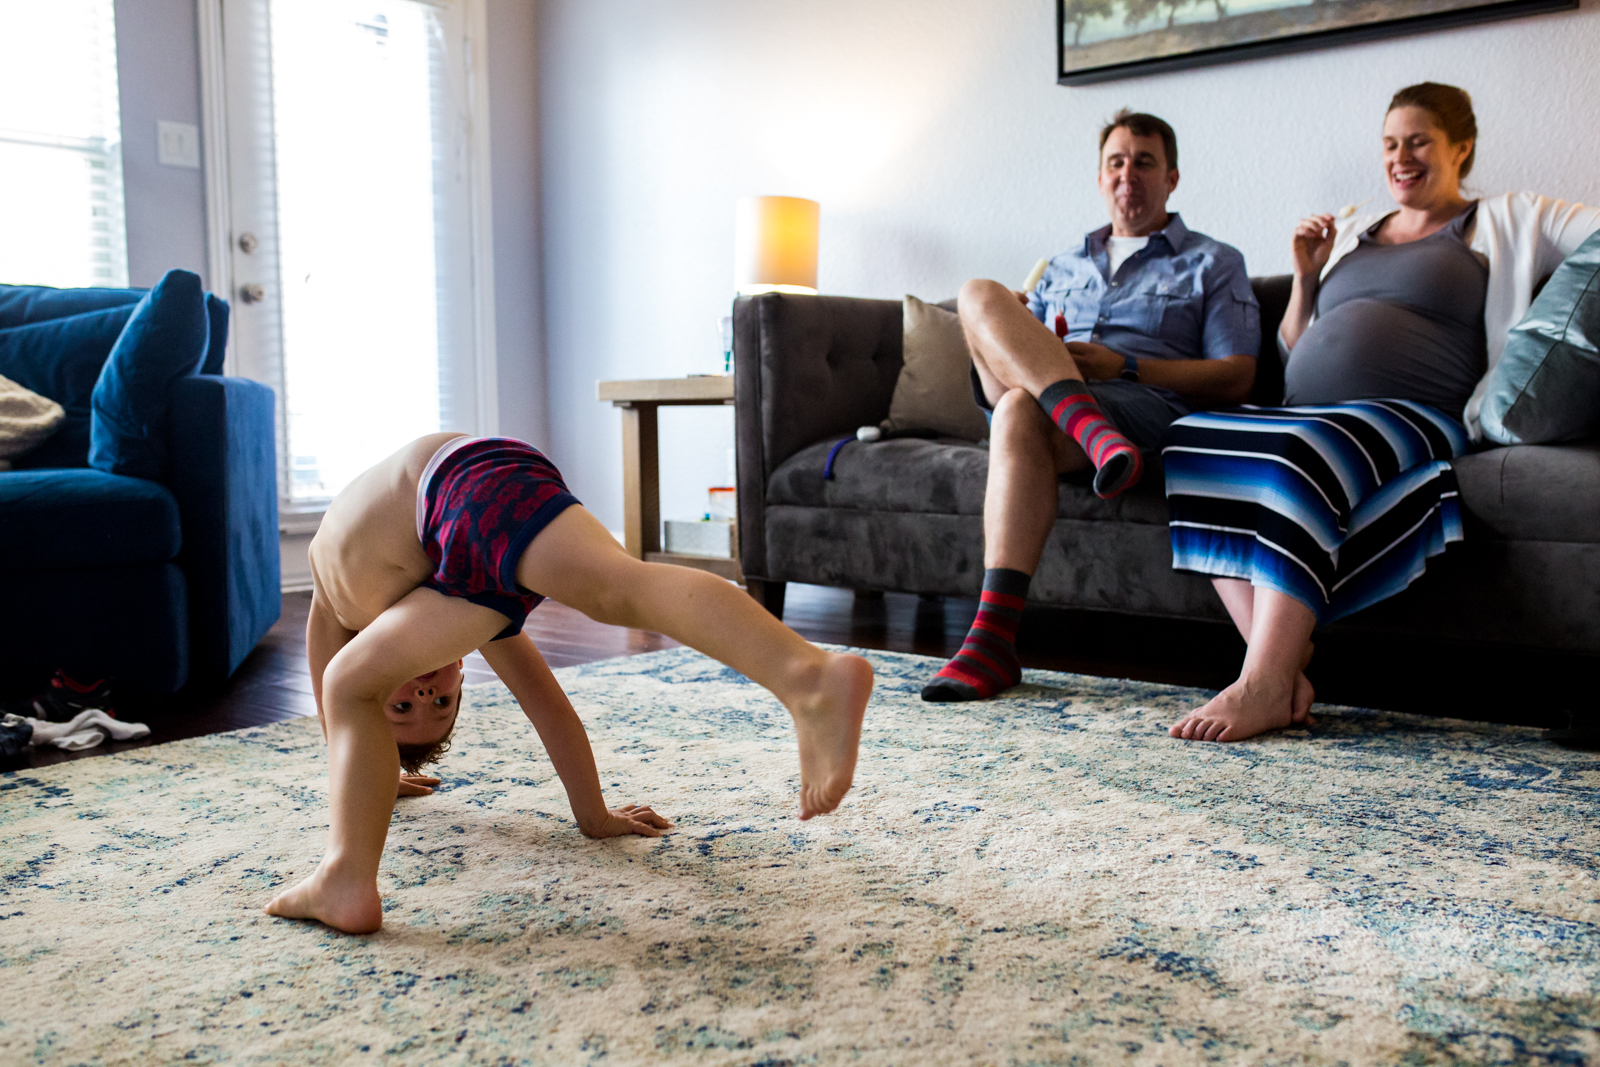 Maternity photographer Lawren Rose Photography captures a funny moment of a 4 year old boy throwing himself all over the living room dancing while his mom and dad sit back and laugh in McKinney Texas